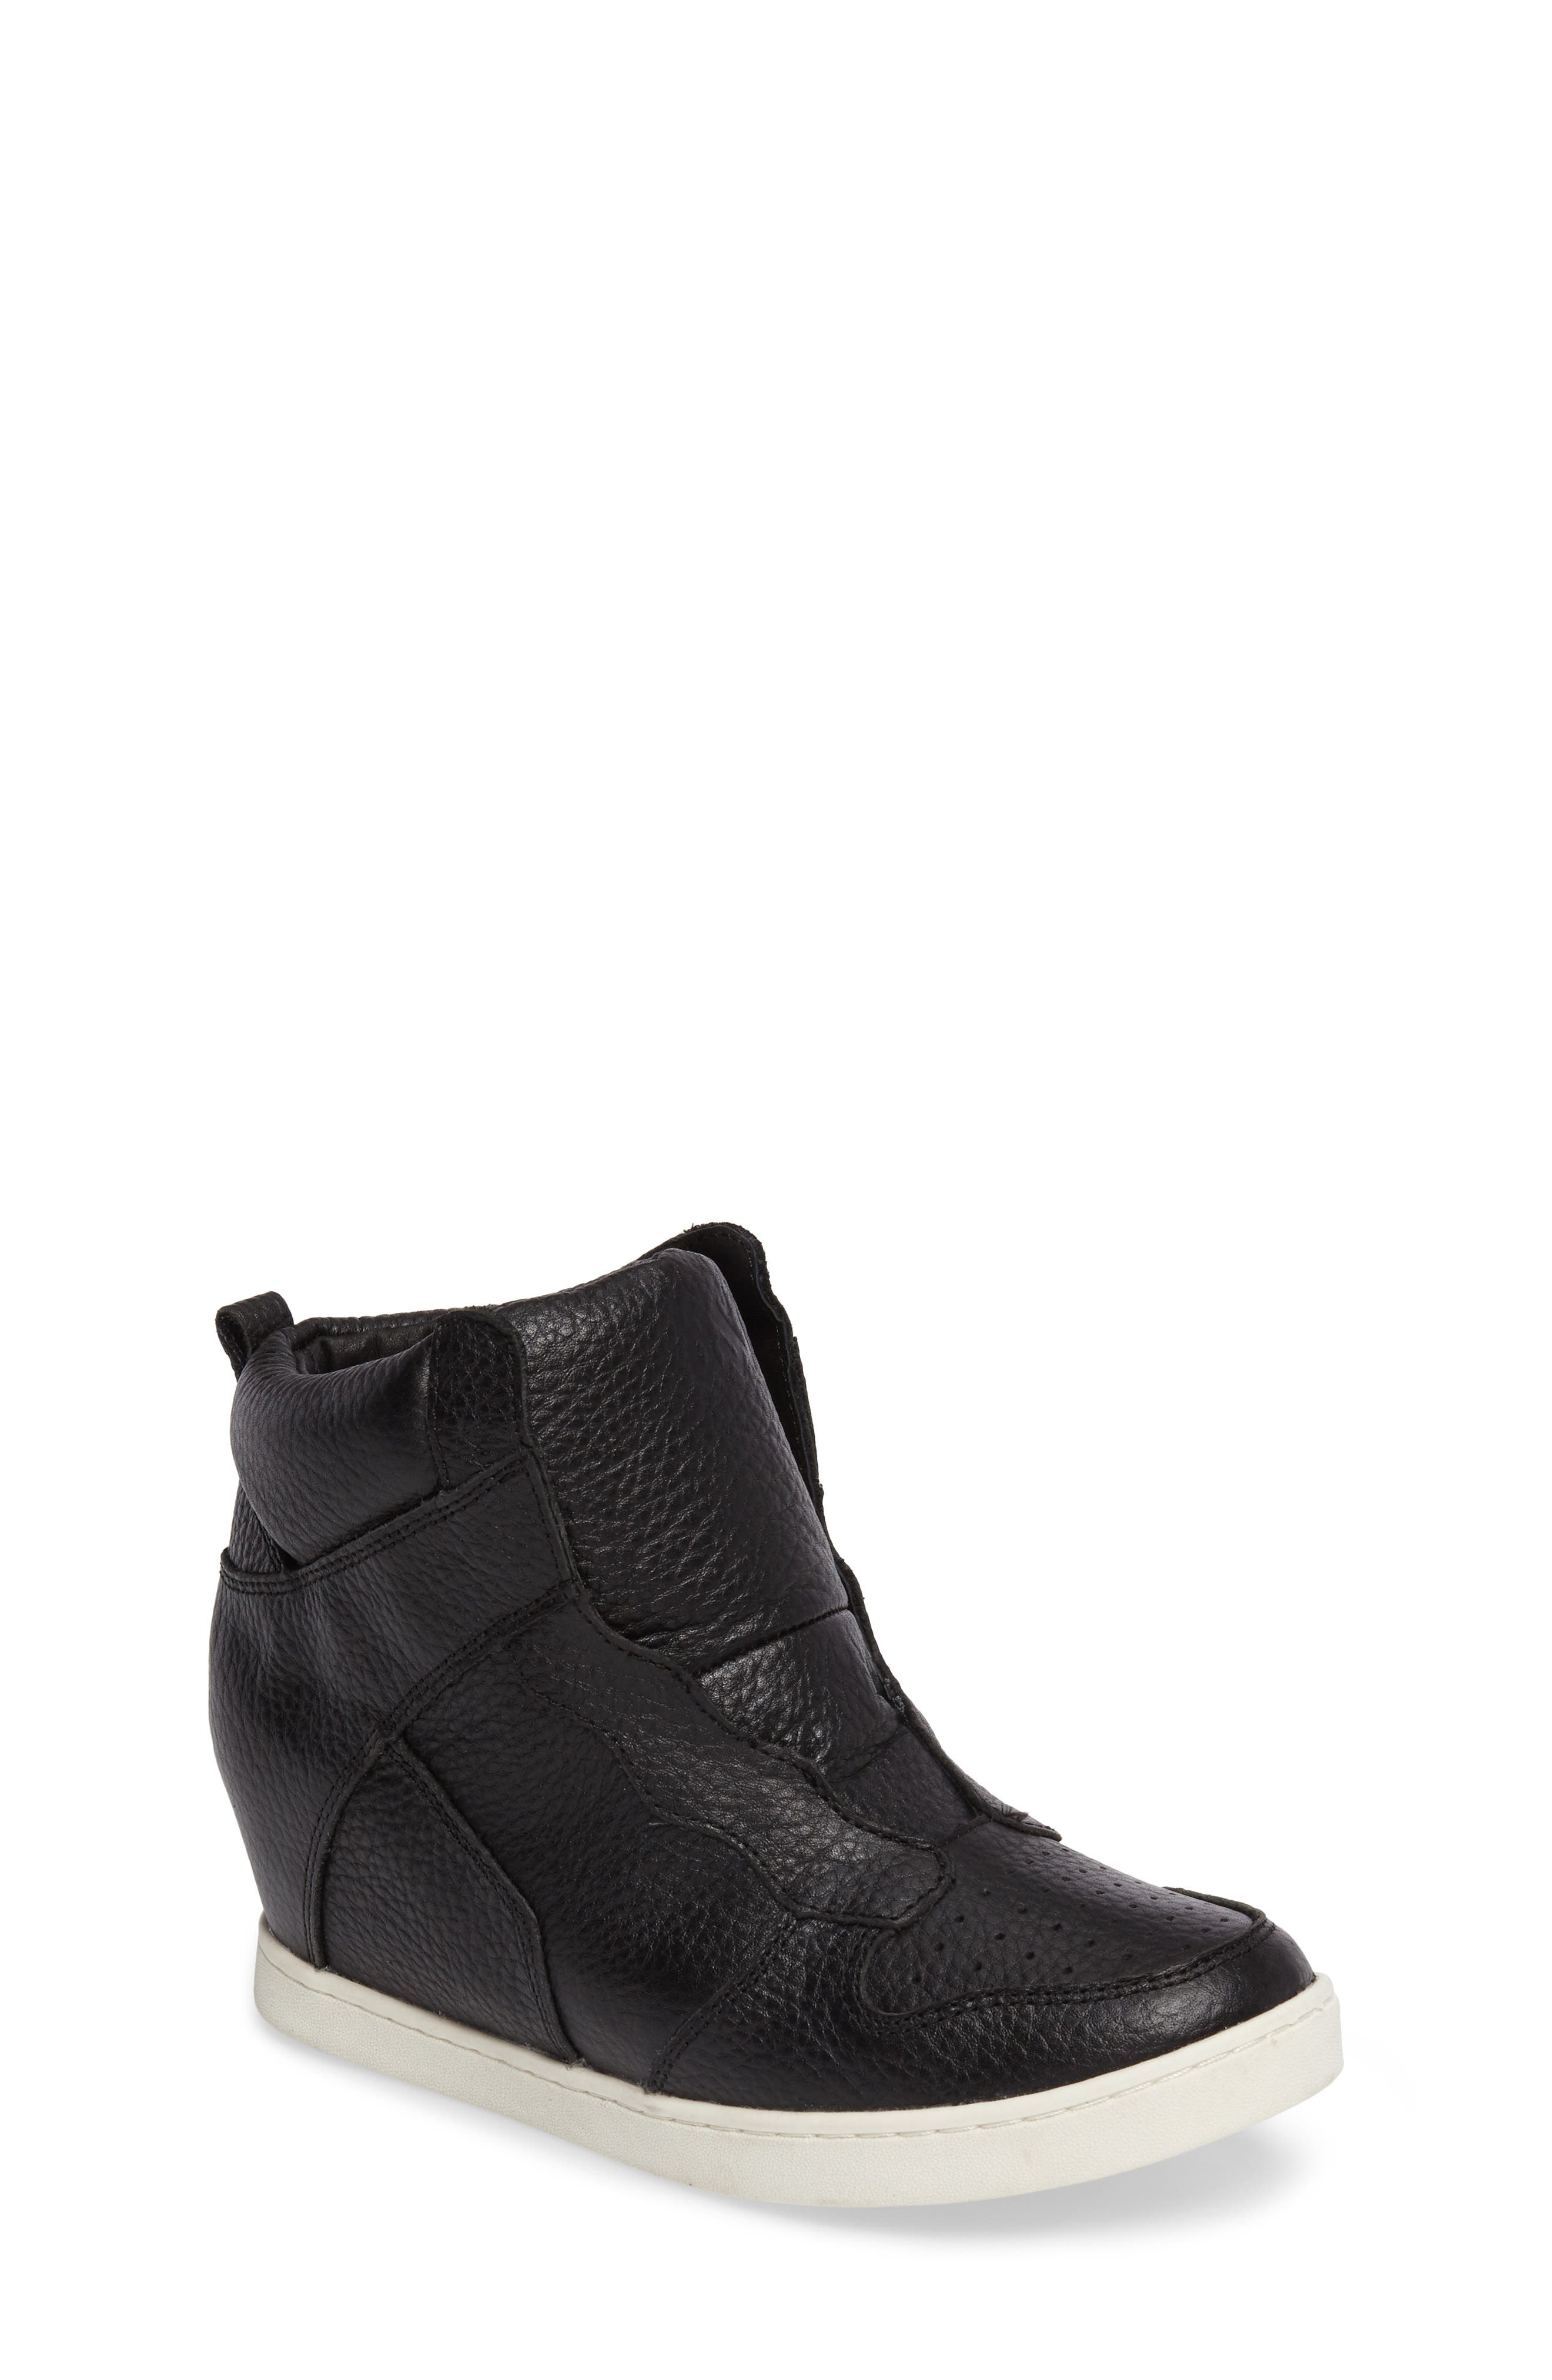 Ash Syndey Laceless Concealed Wedge Bootie (Toddler, Little Kid & Big Kid)